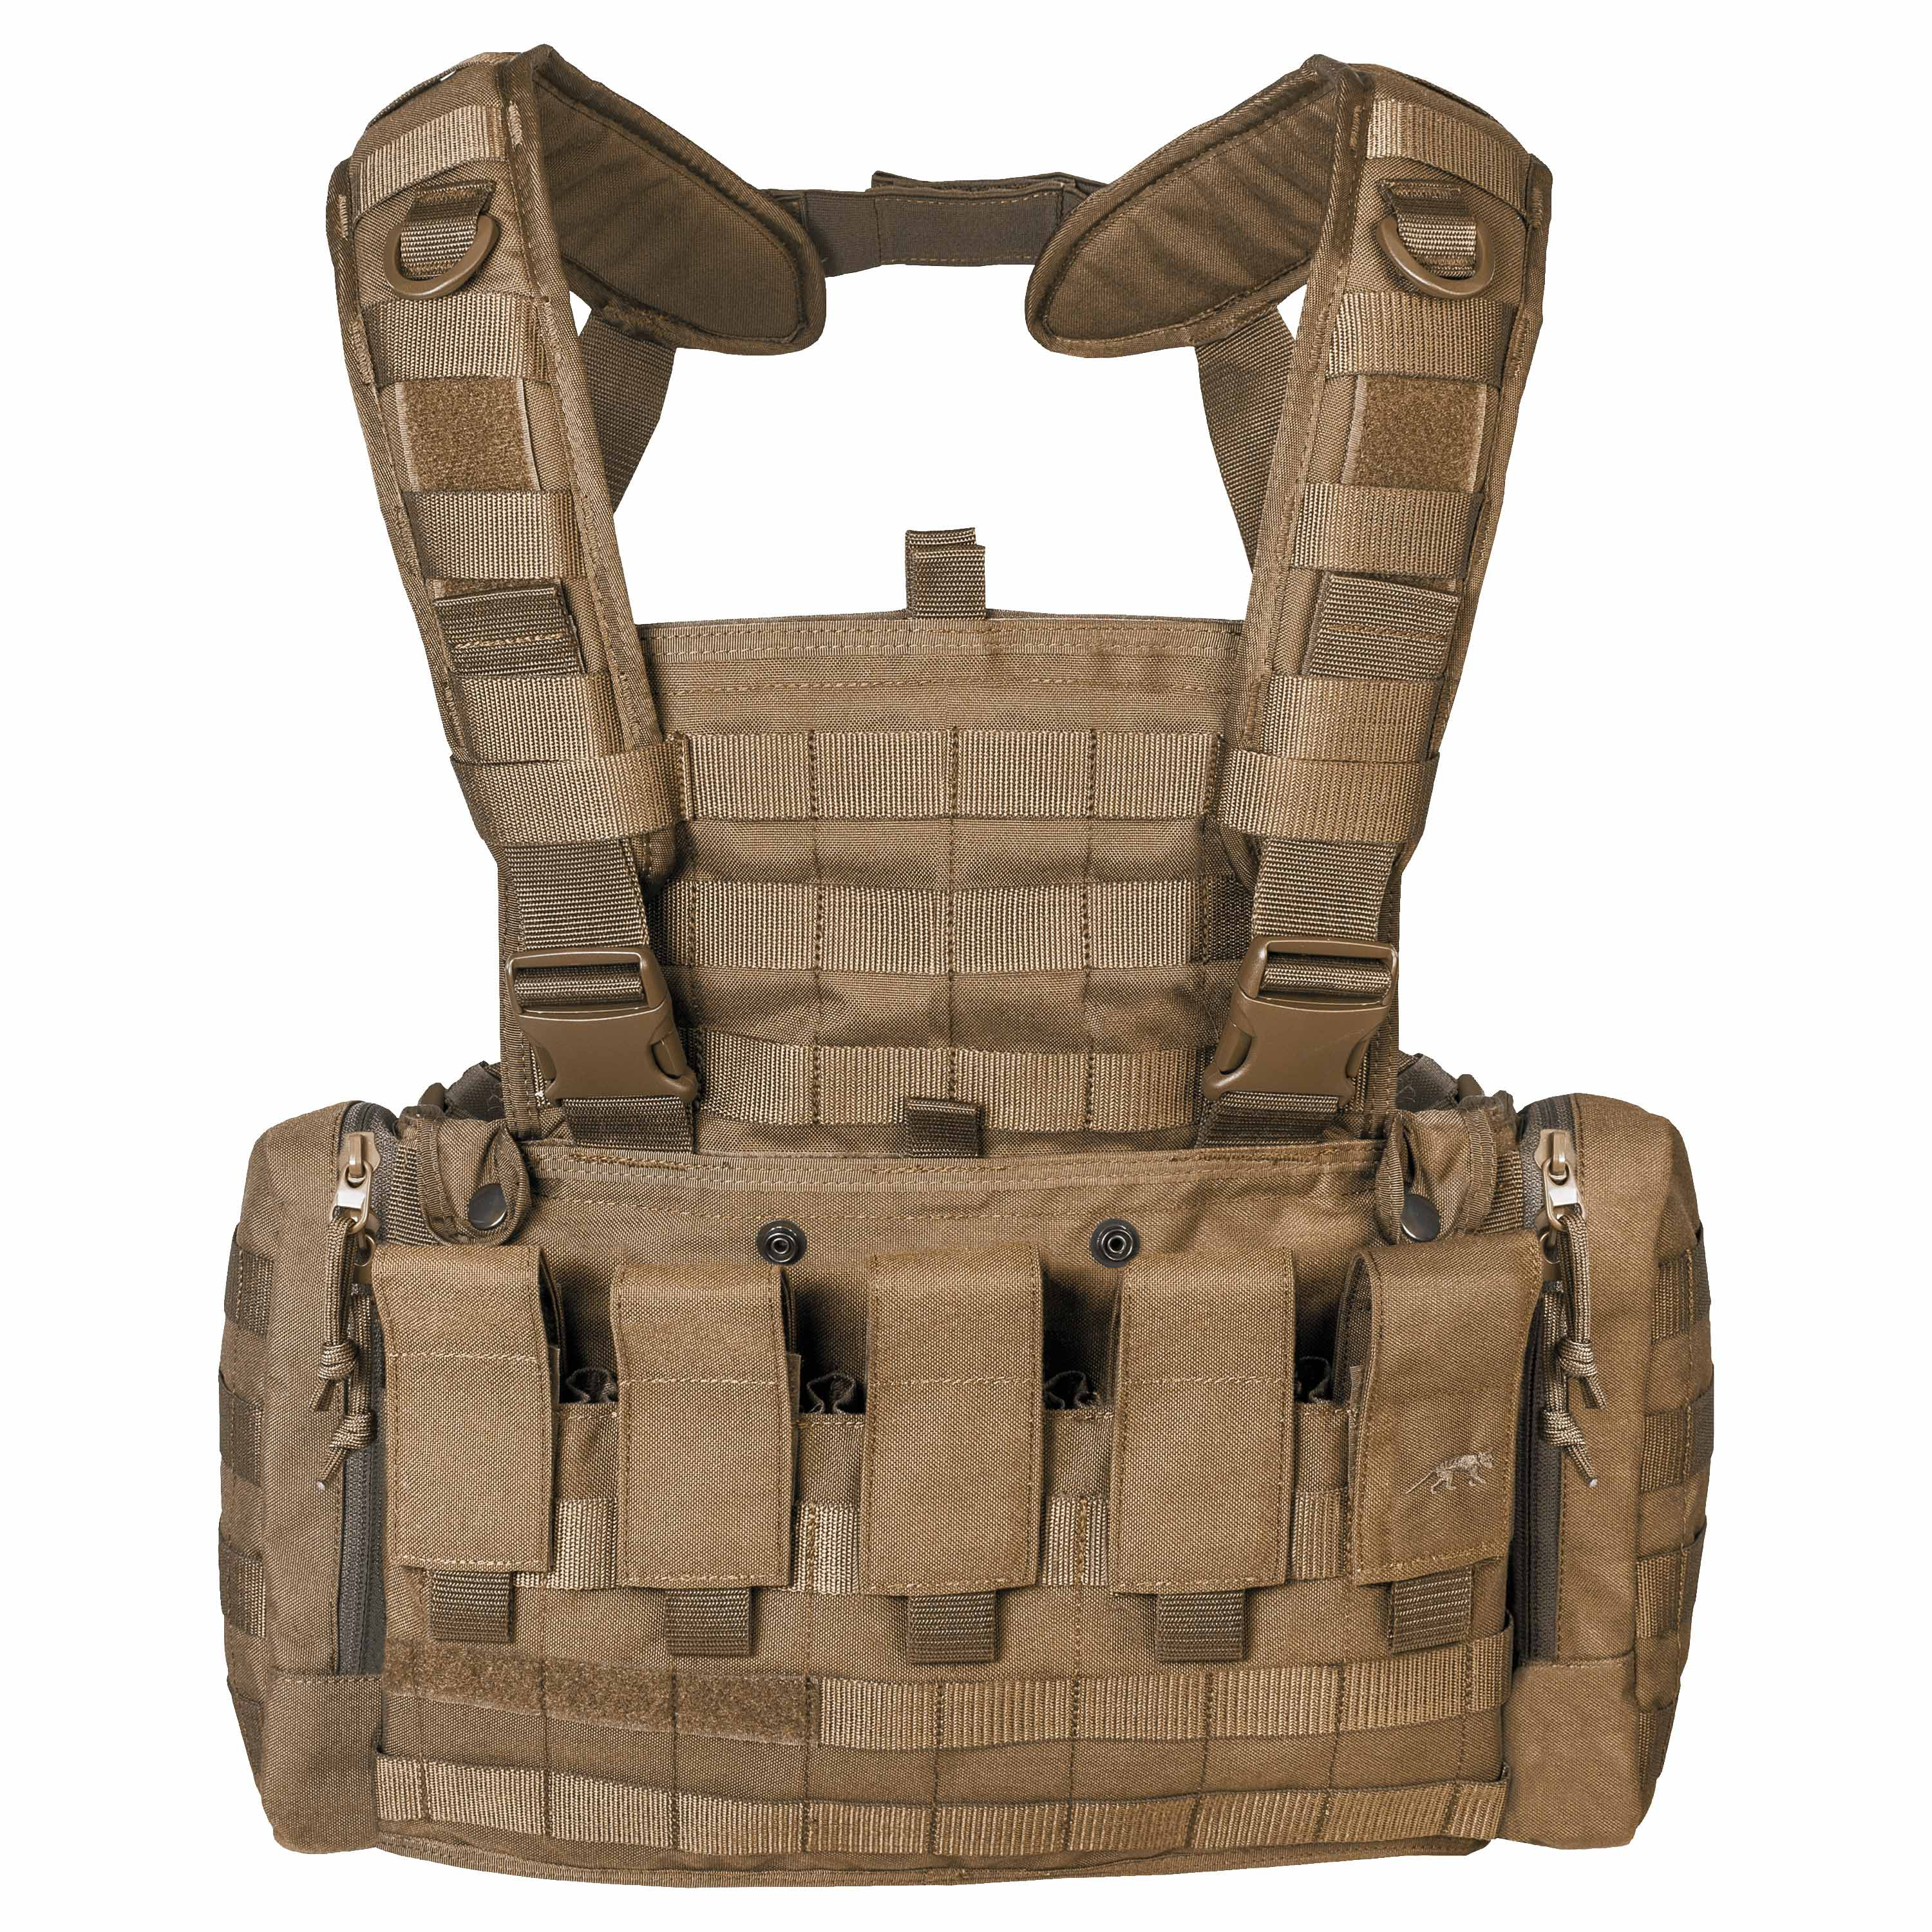 Chest Rig TT MK II M4 coyote